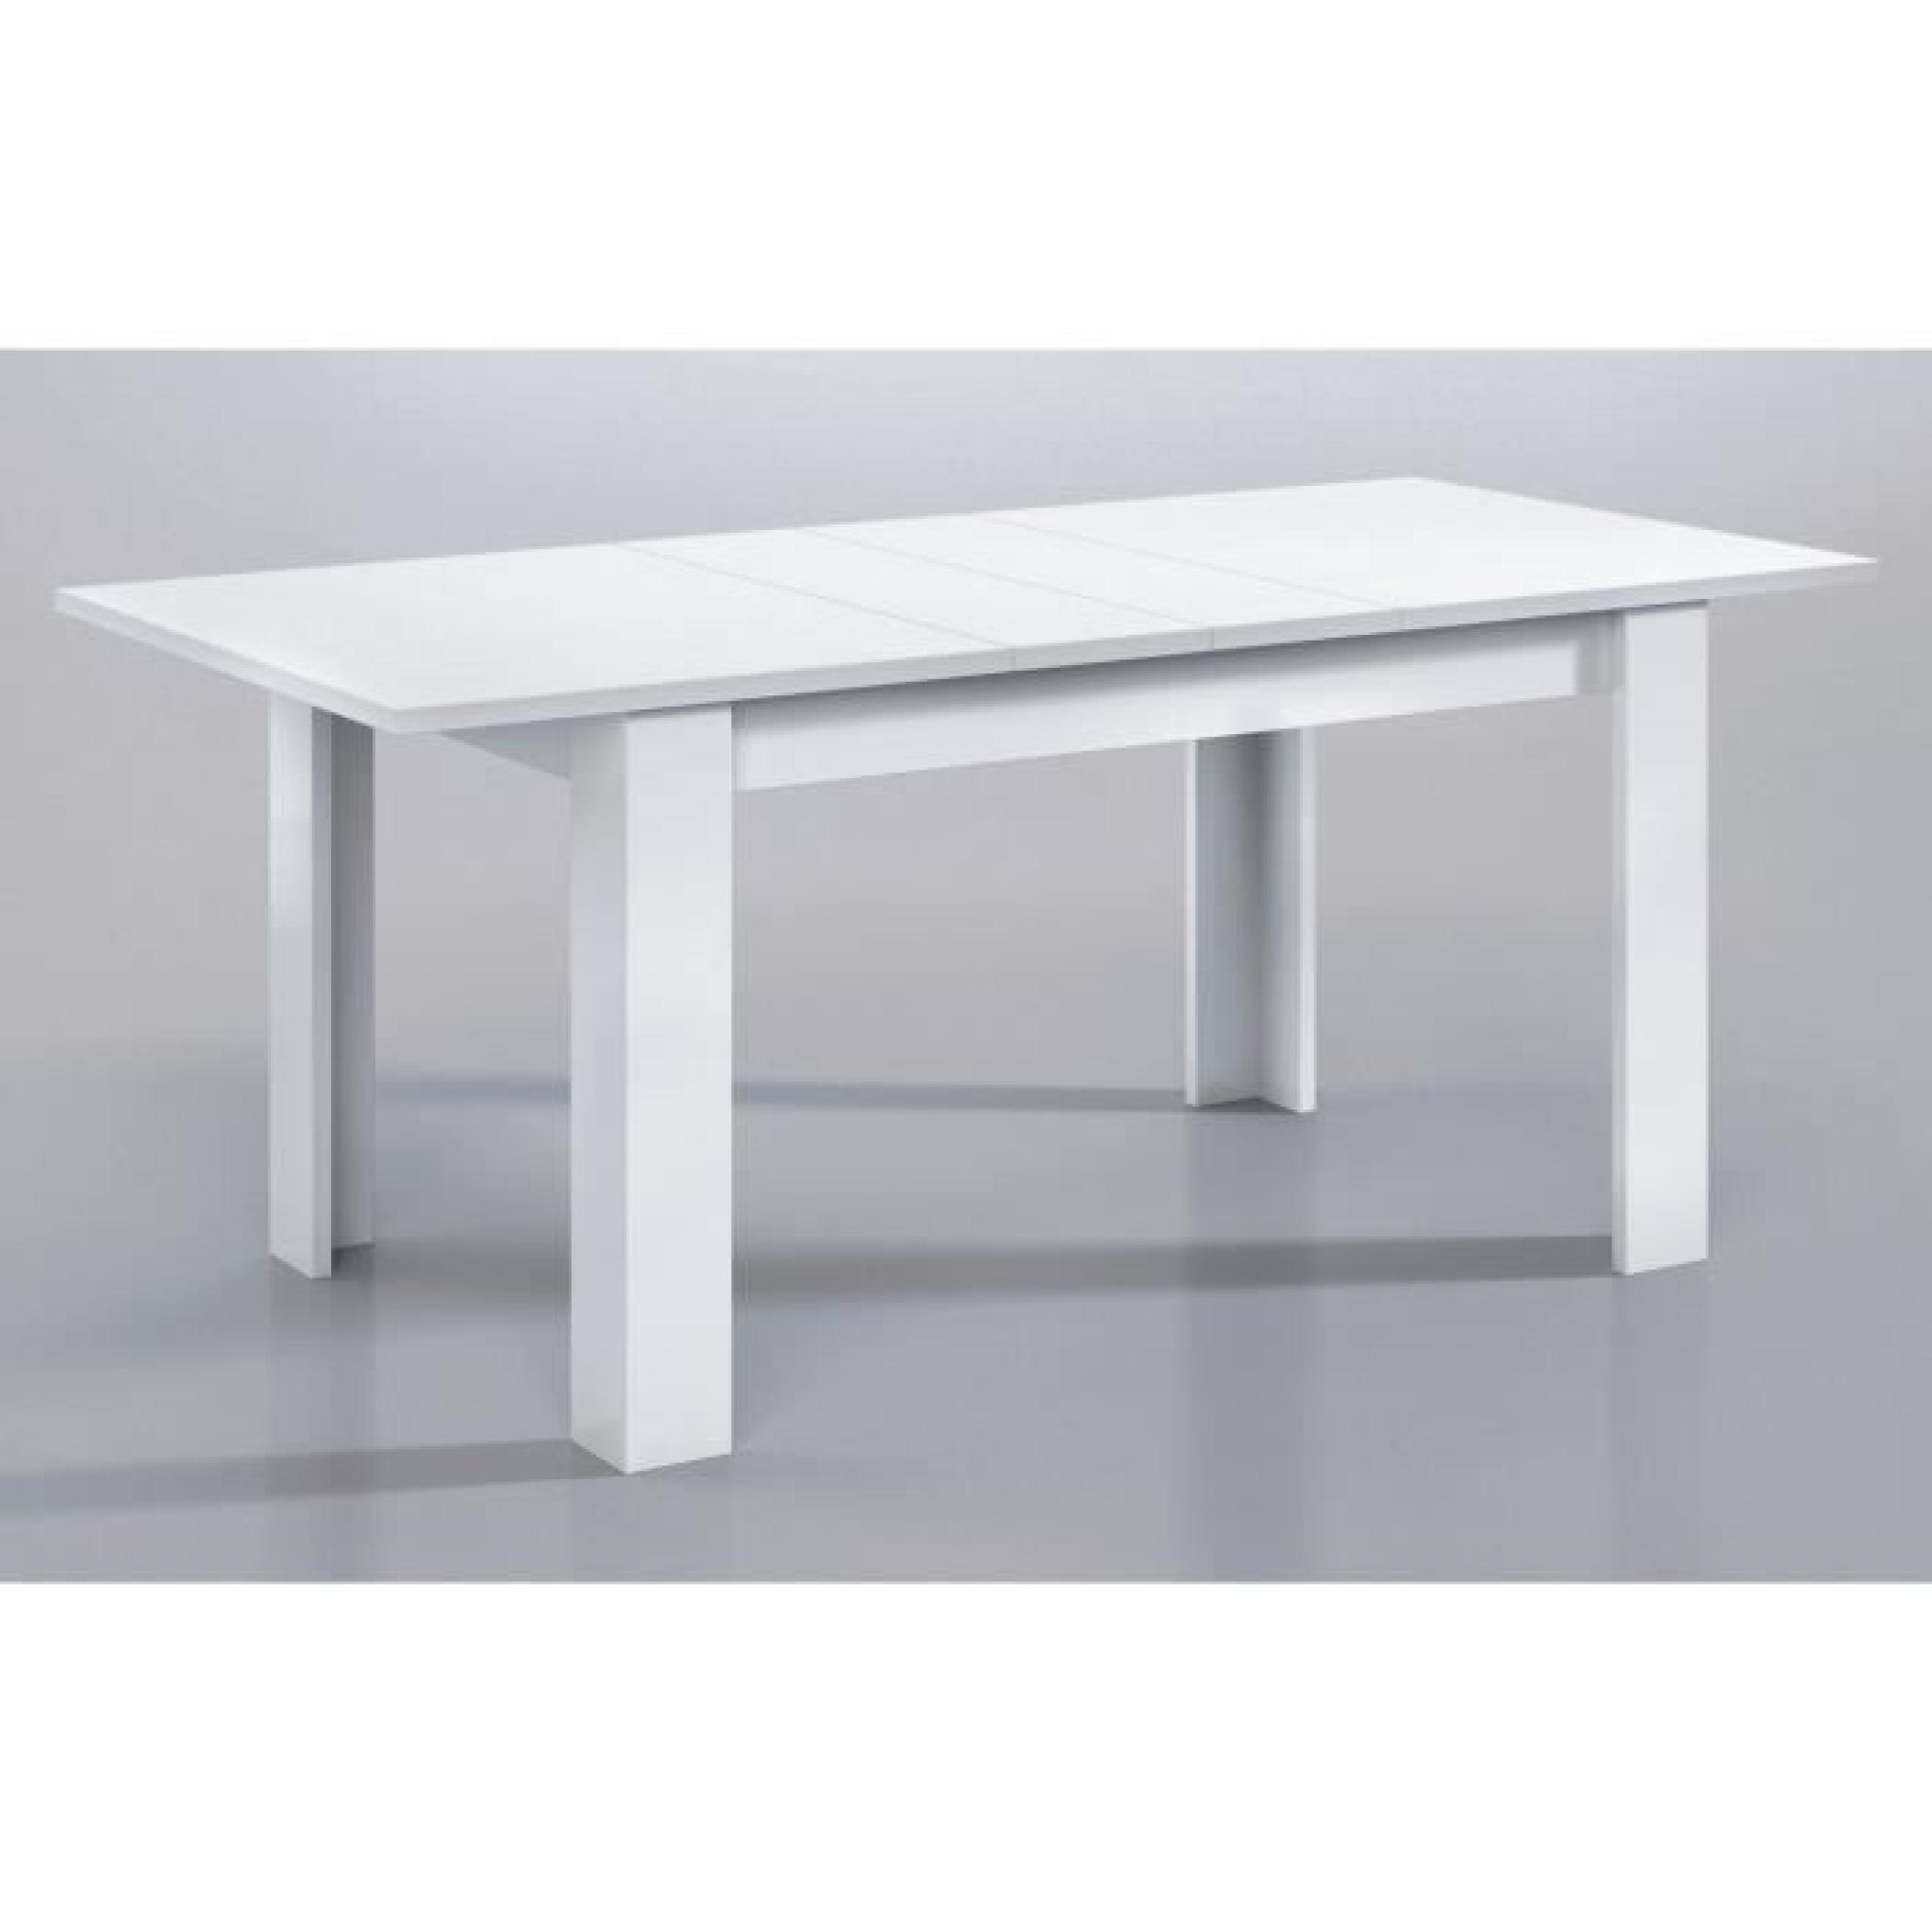 Table à Manger 140 X 90 Kendra Table Extensible 140 190cm Blanc Brillant